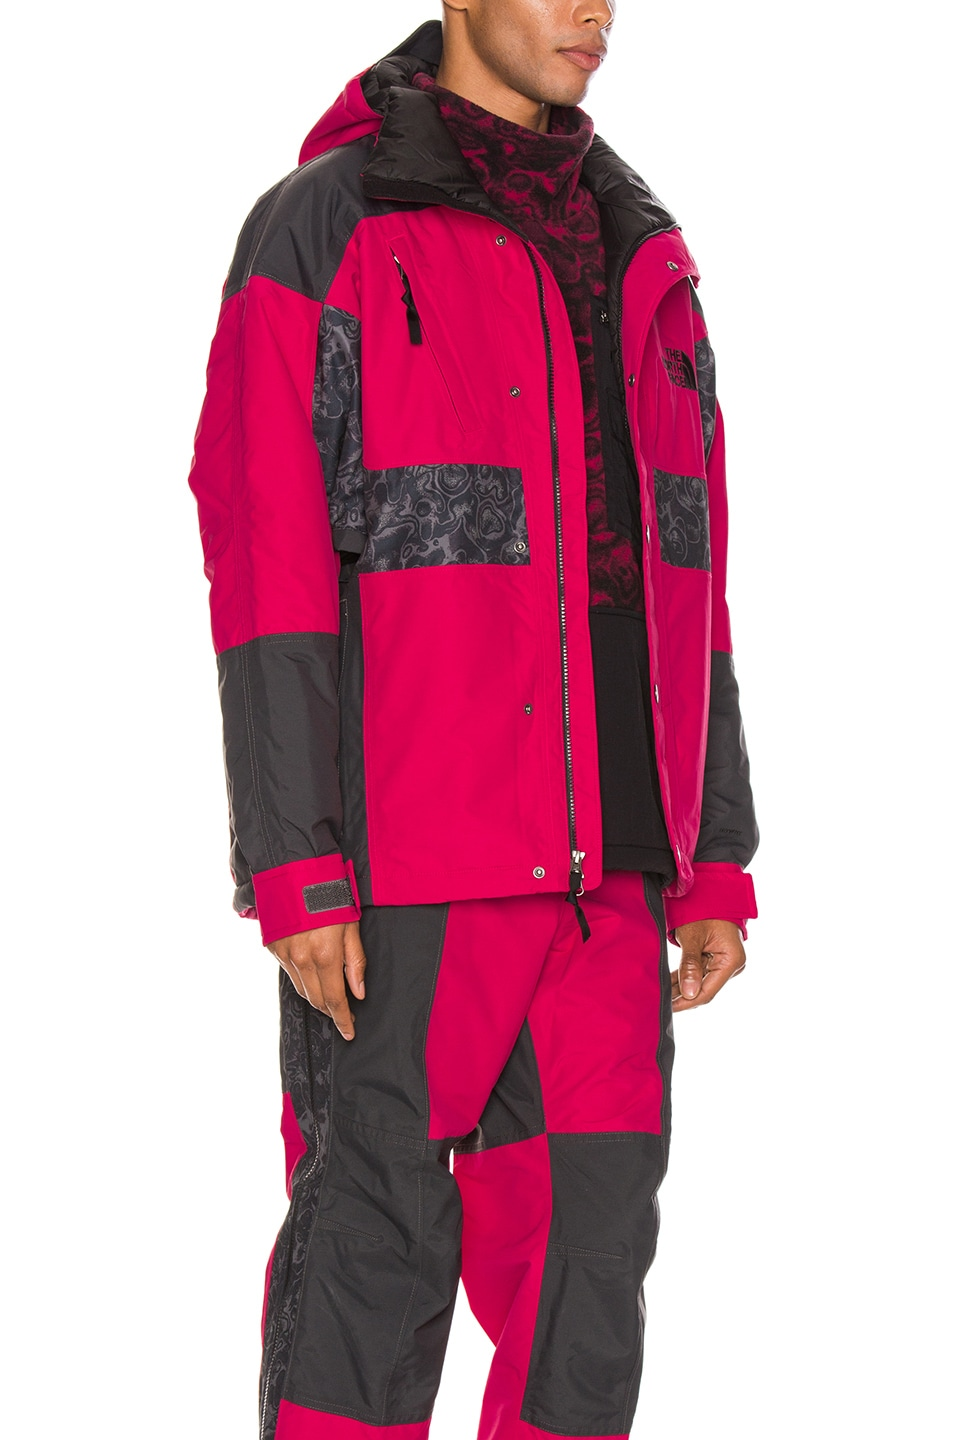 Image 3 of The North Face Black 94 Rage WP Synthetic Insulated Jacket in Rose Red & Asphalt Grey